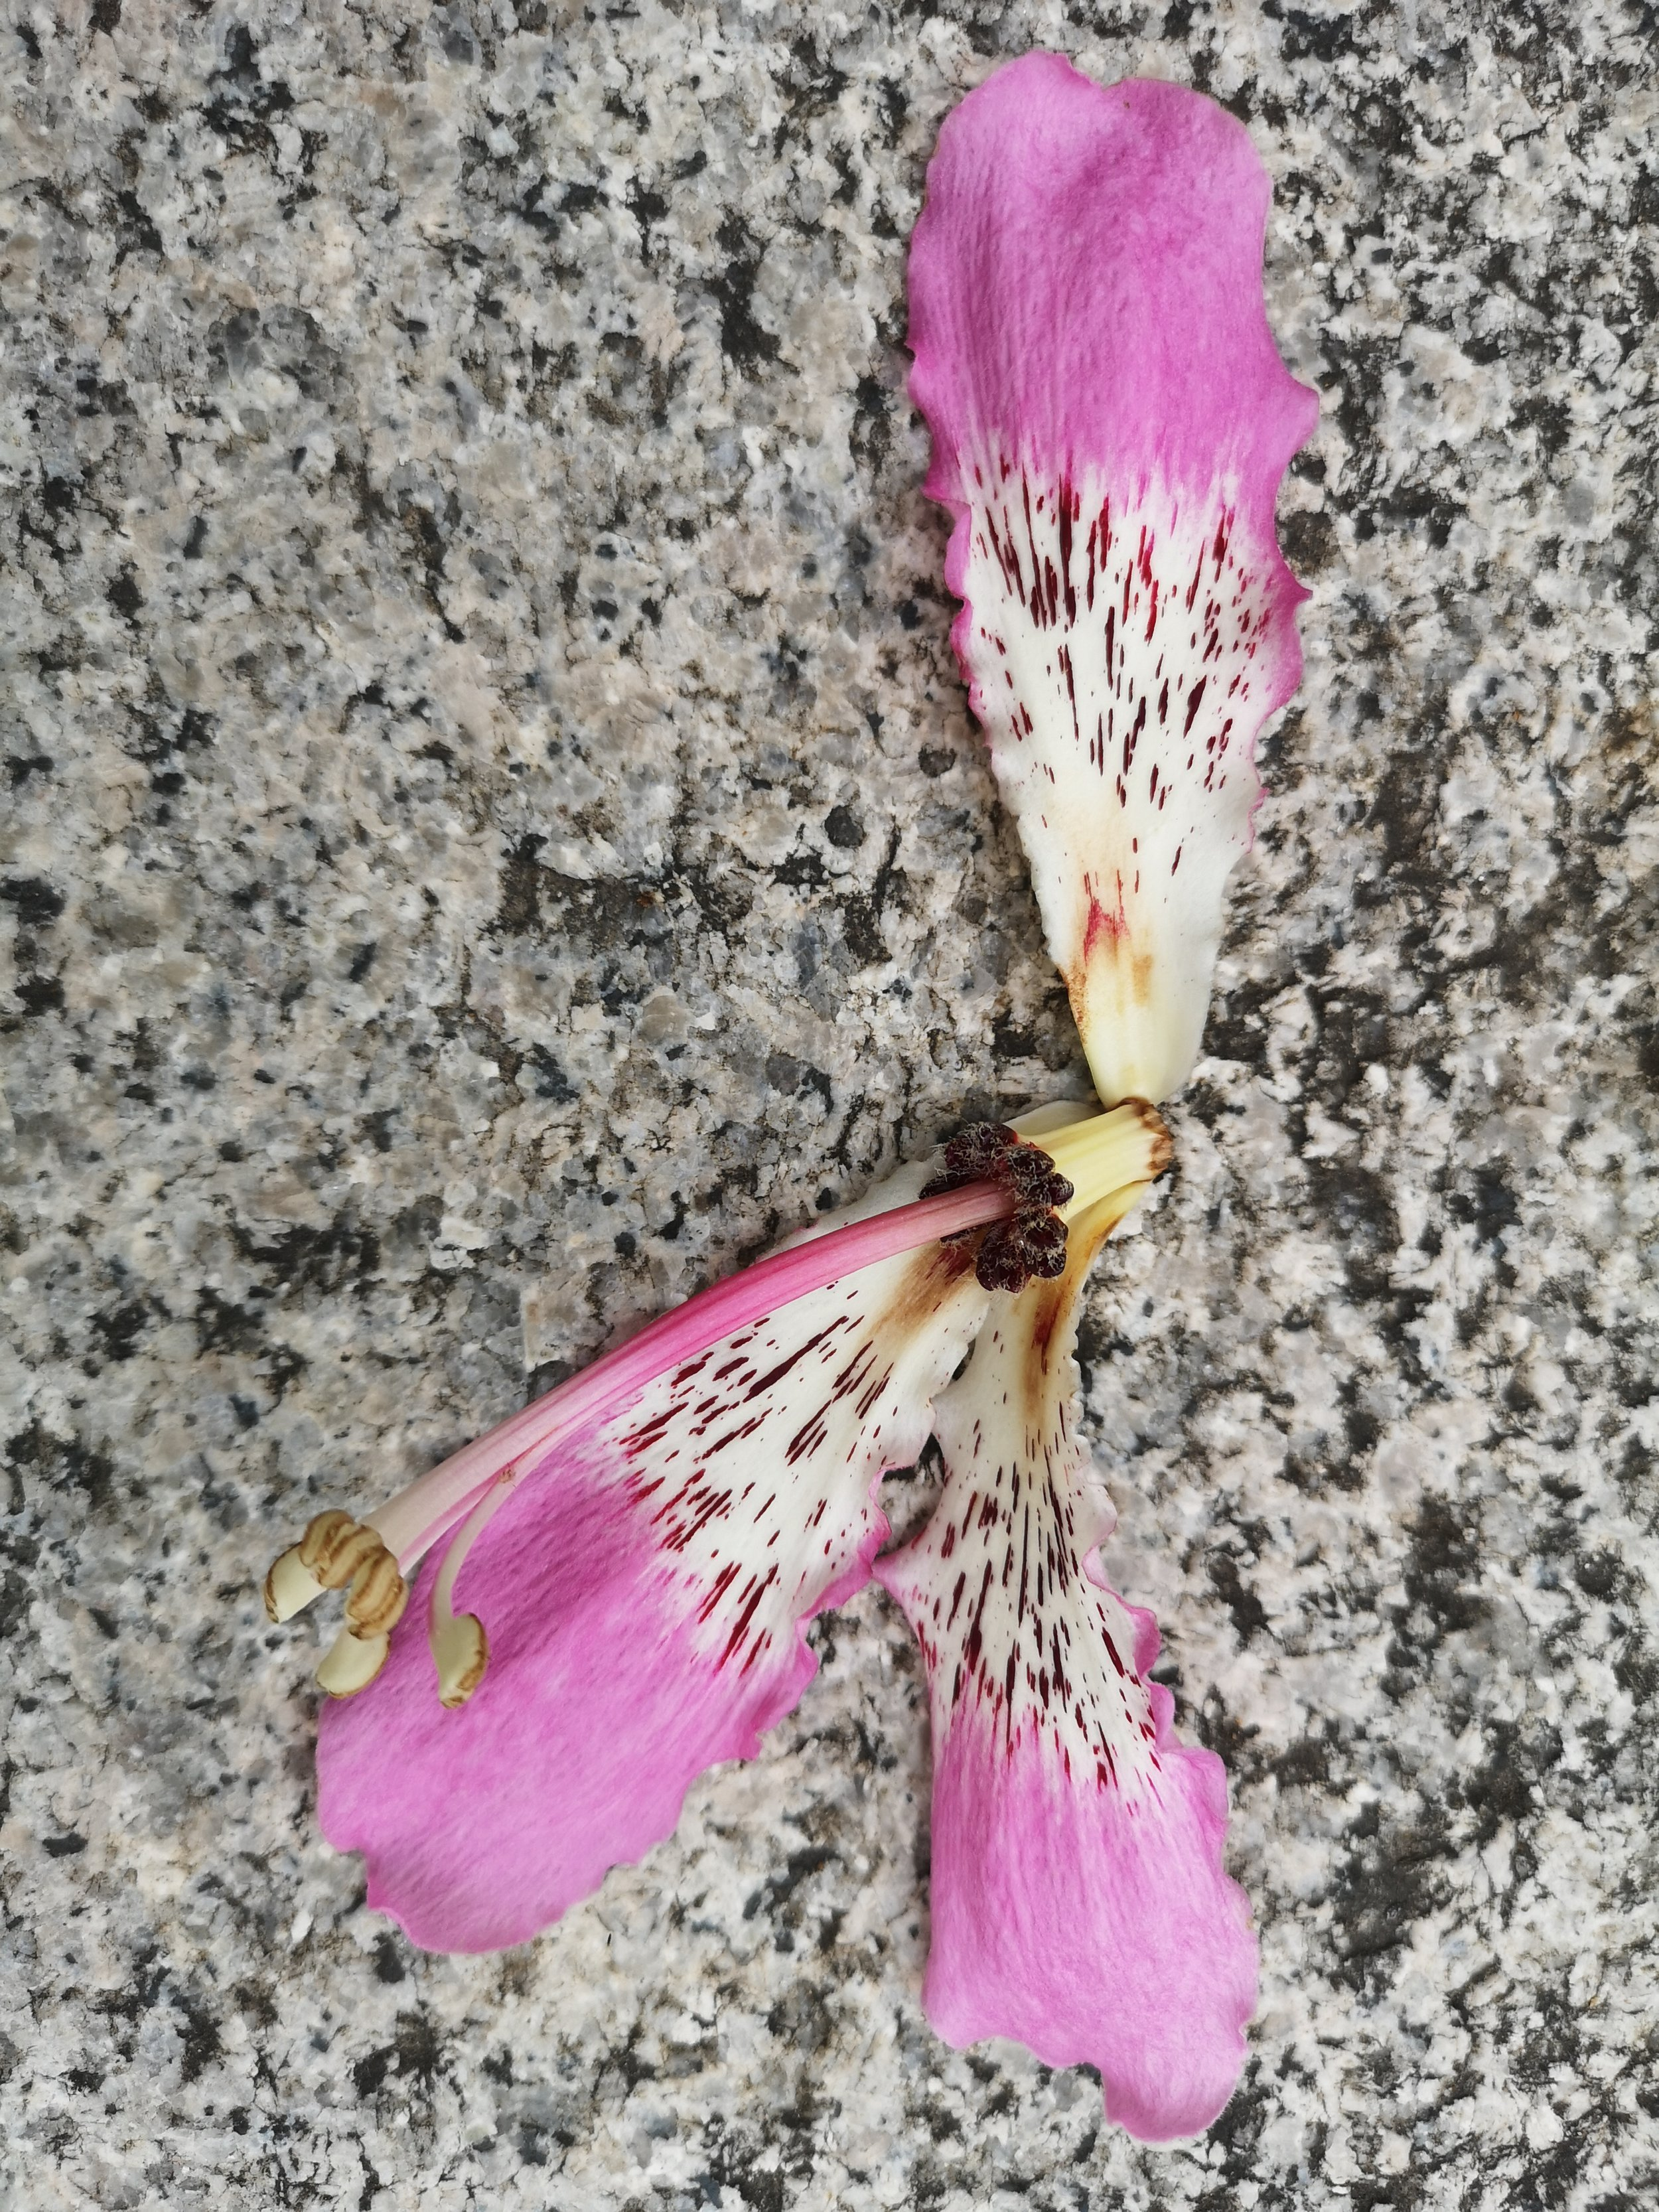 Fallen Bauhinia on the granite staircase up the Hong Kong Zoological Garden.